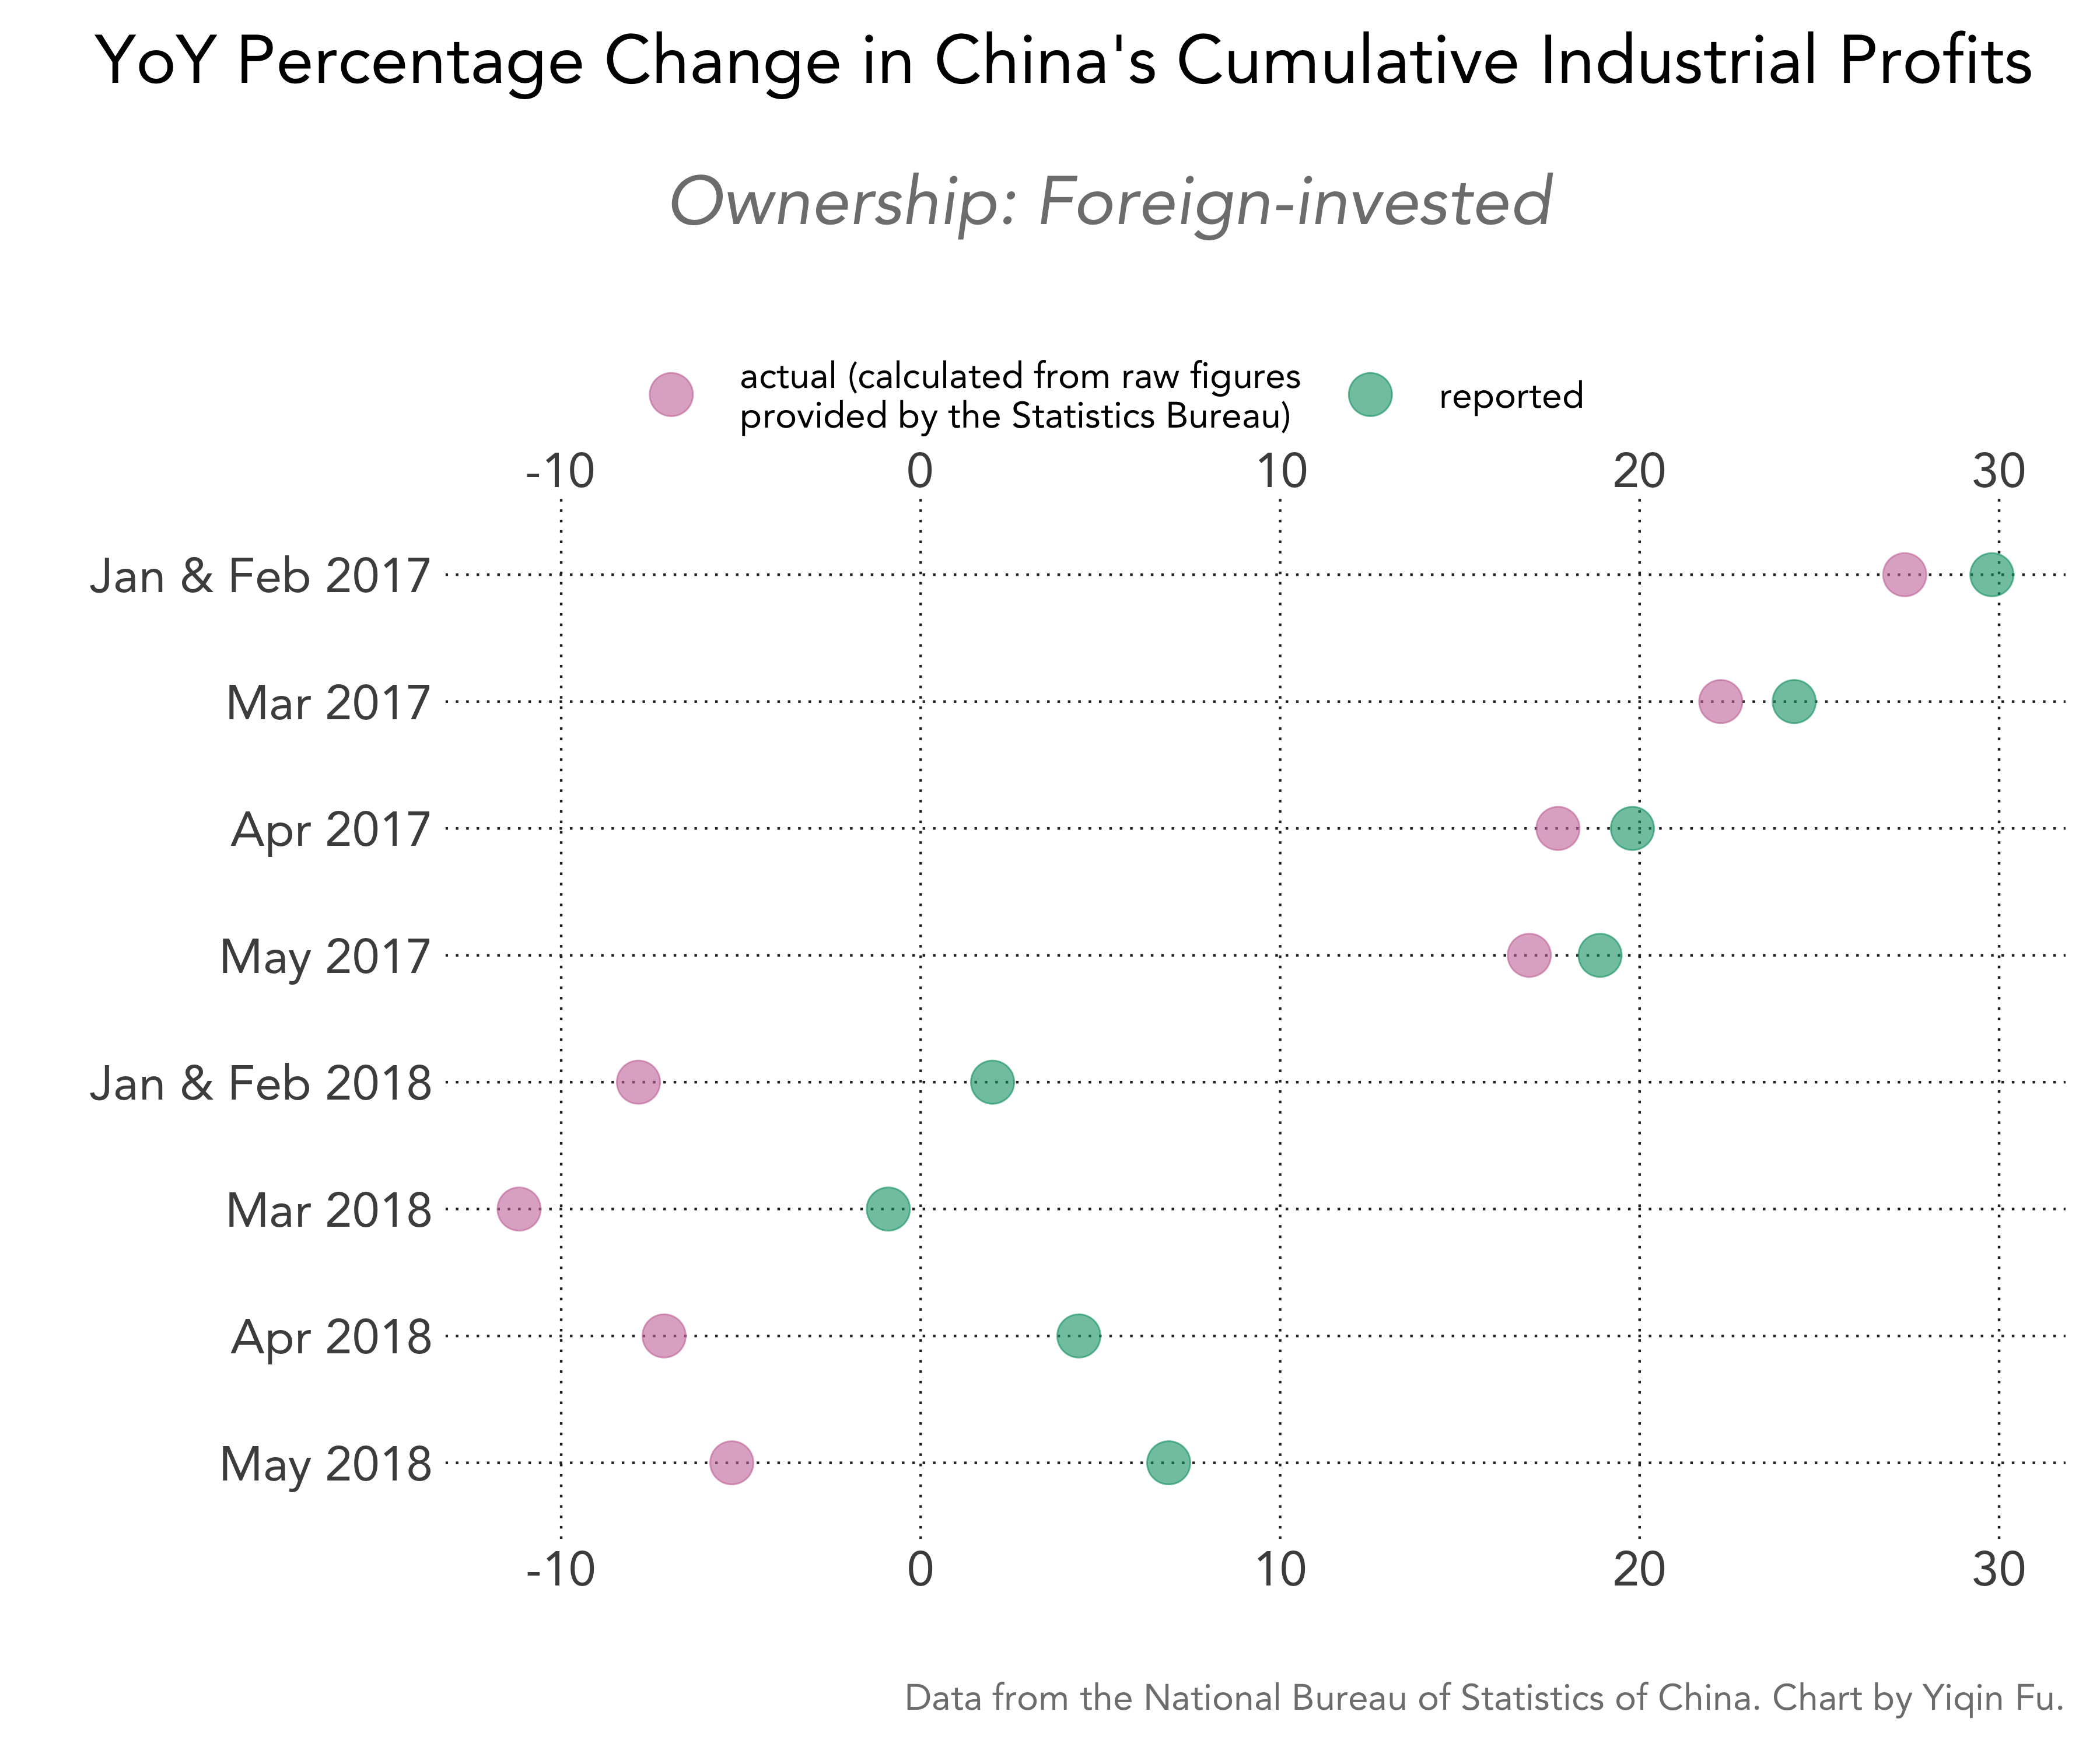 china-cumulative-industrial-profits-pct-change-actual-vs-reported-foreign